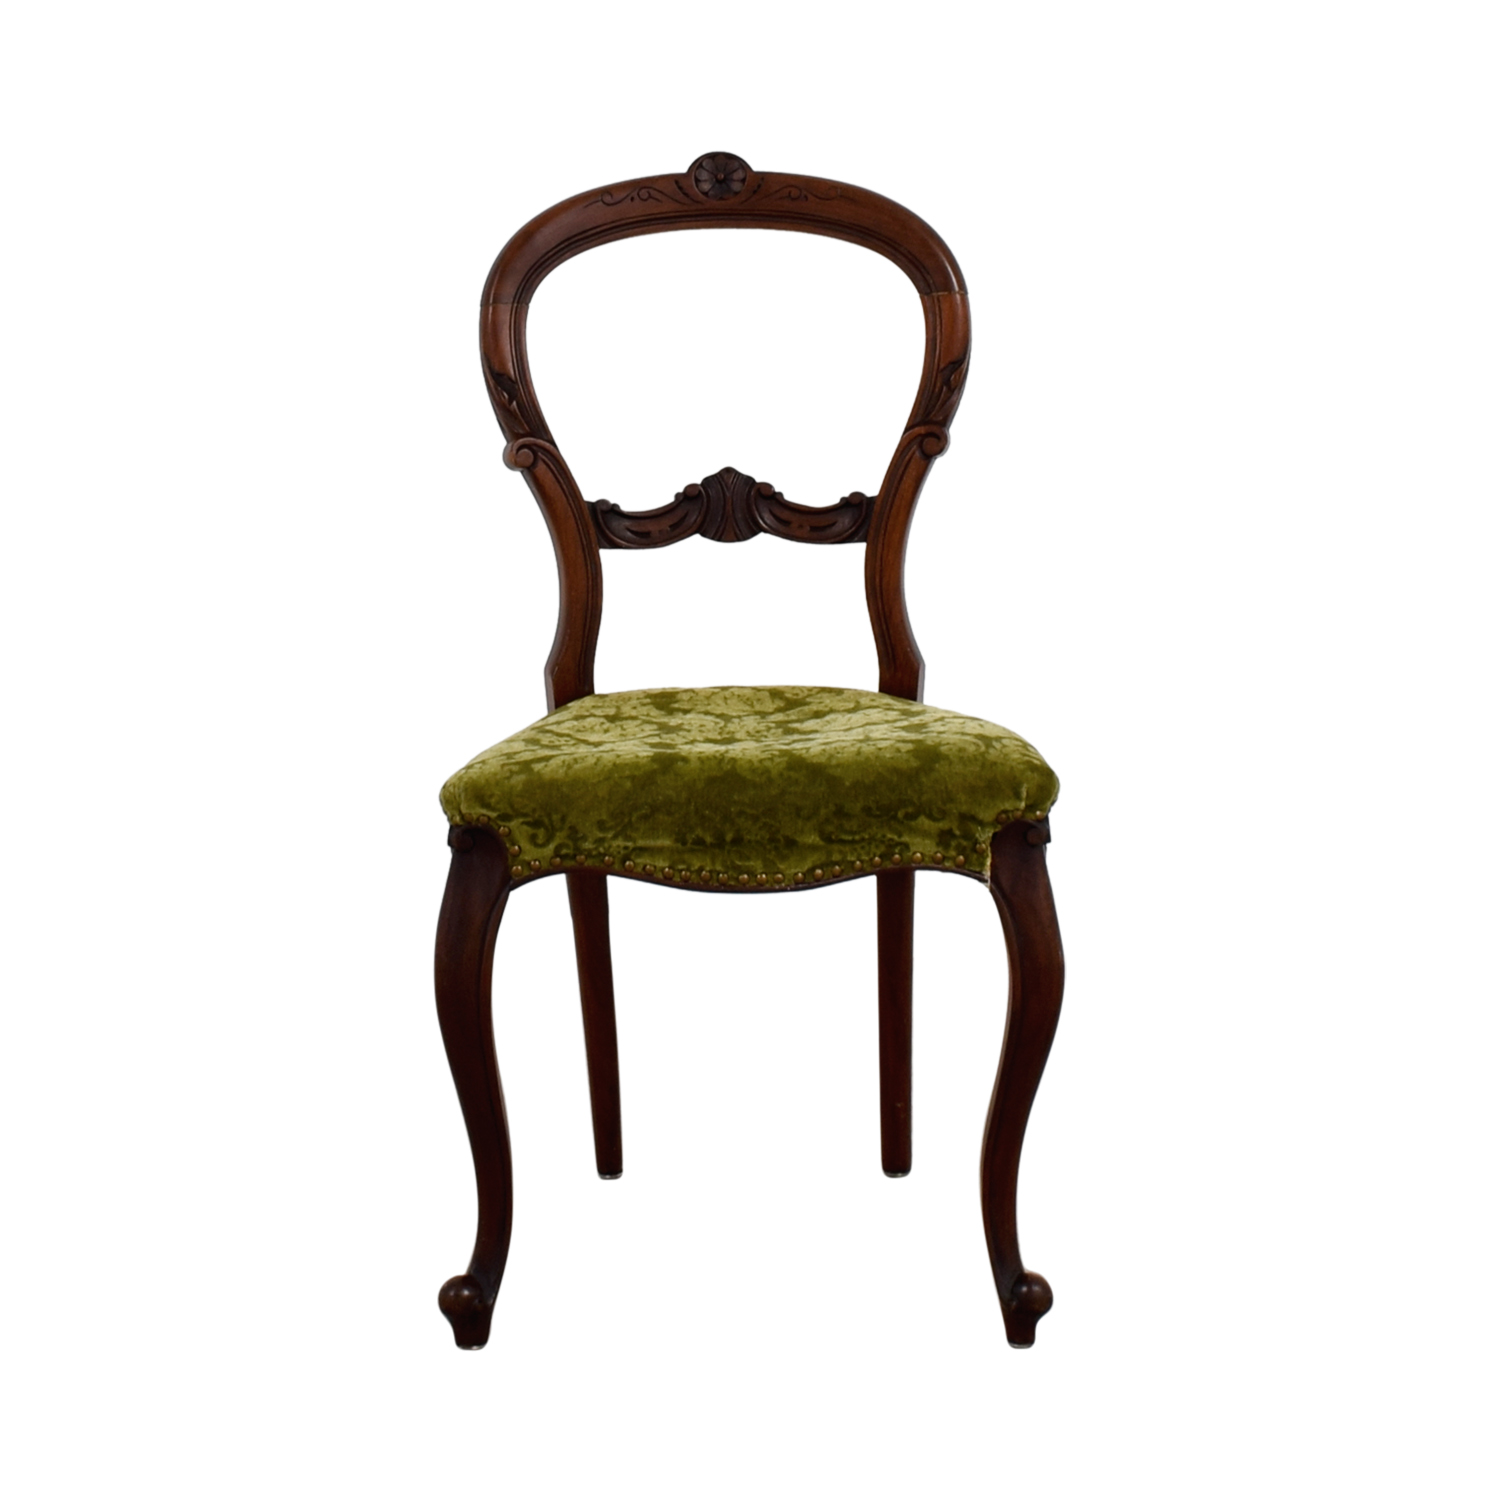 shop Antique Green Velvet Wood Chair online